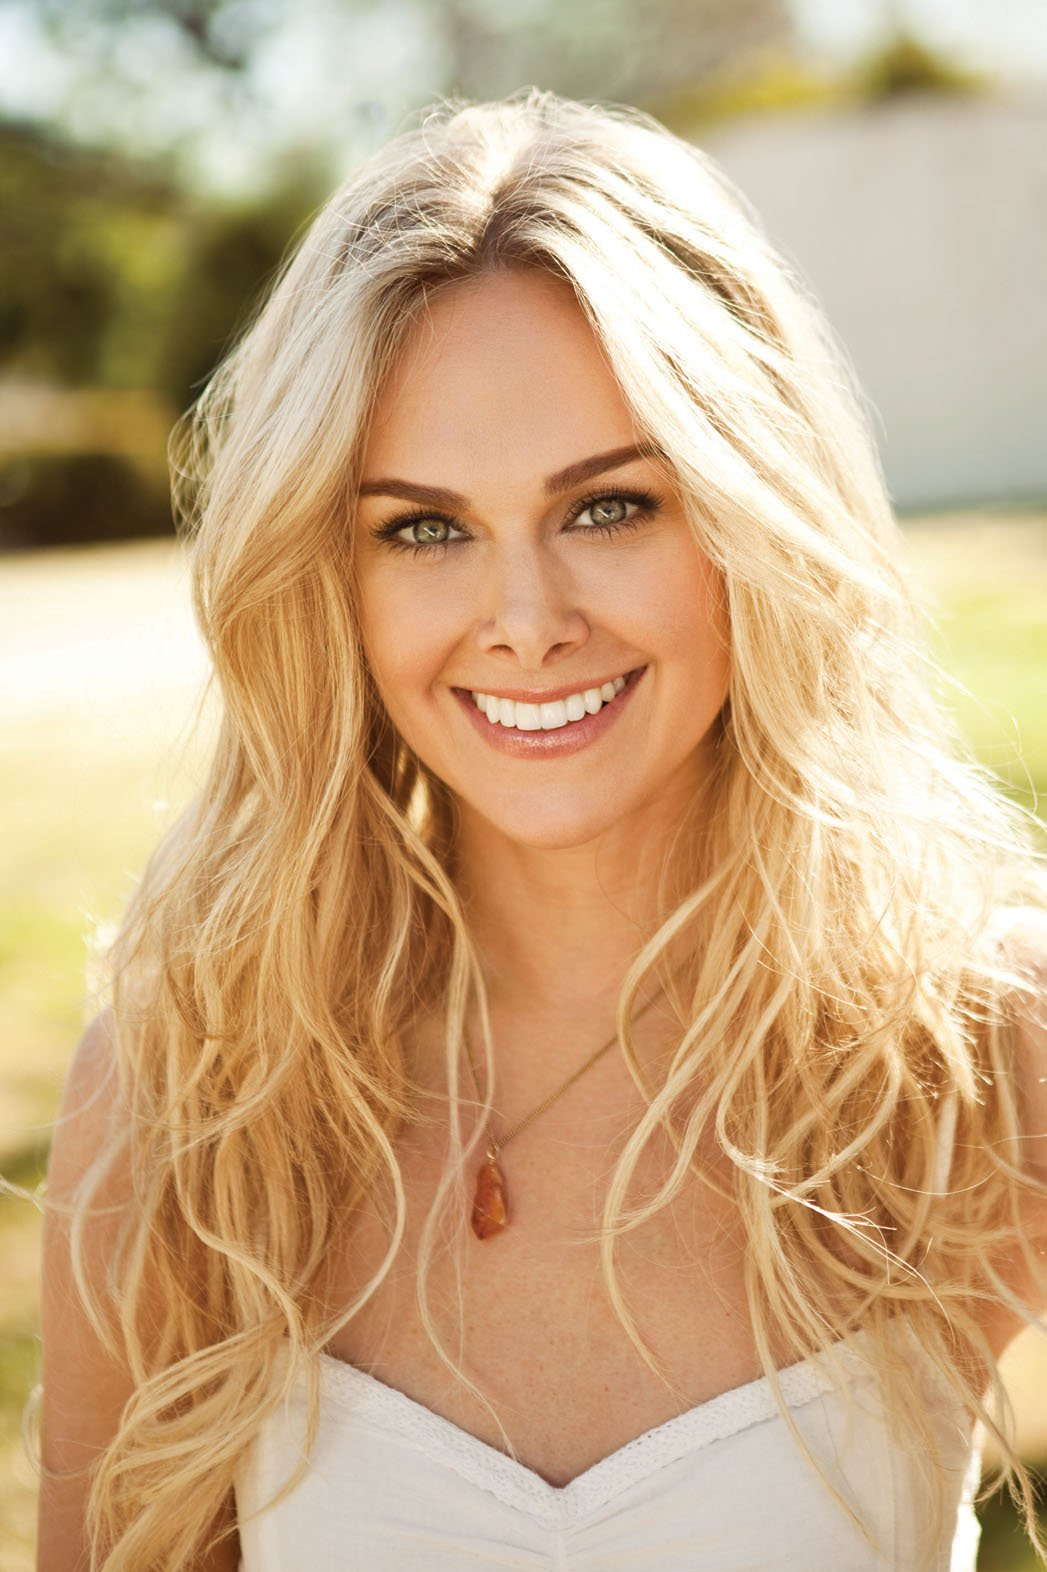 Laura Bell Bundy Film Home Is Where the Heart Is Receives DVD Release Laura Bell Bundy Film Home Is Where the Heart Is Receives DVD Release